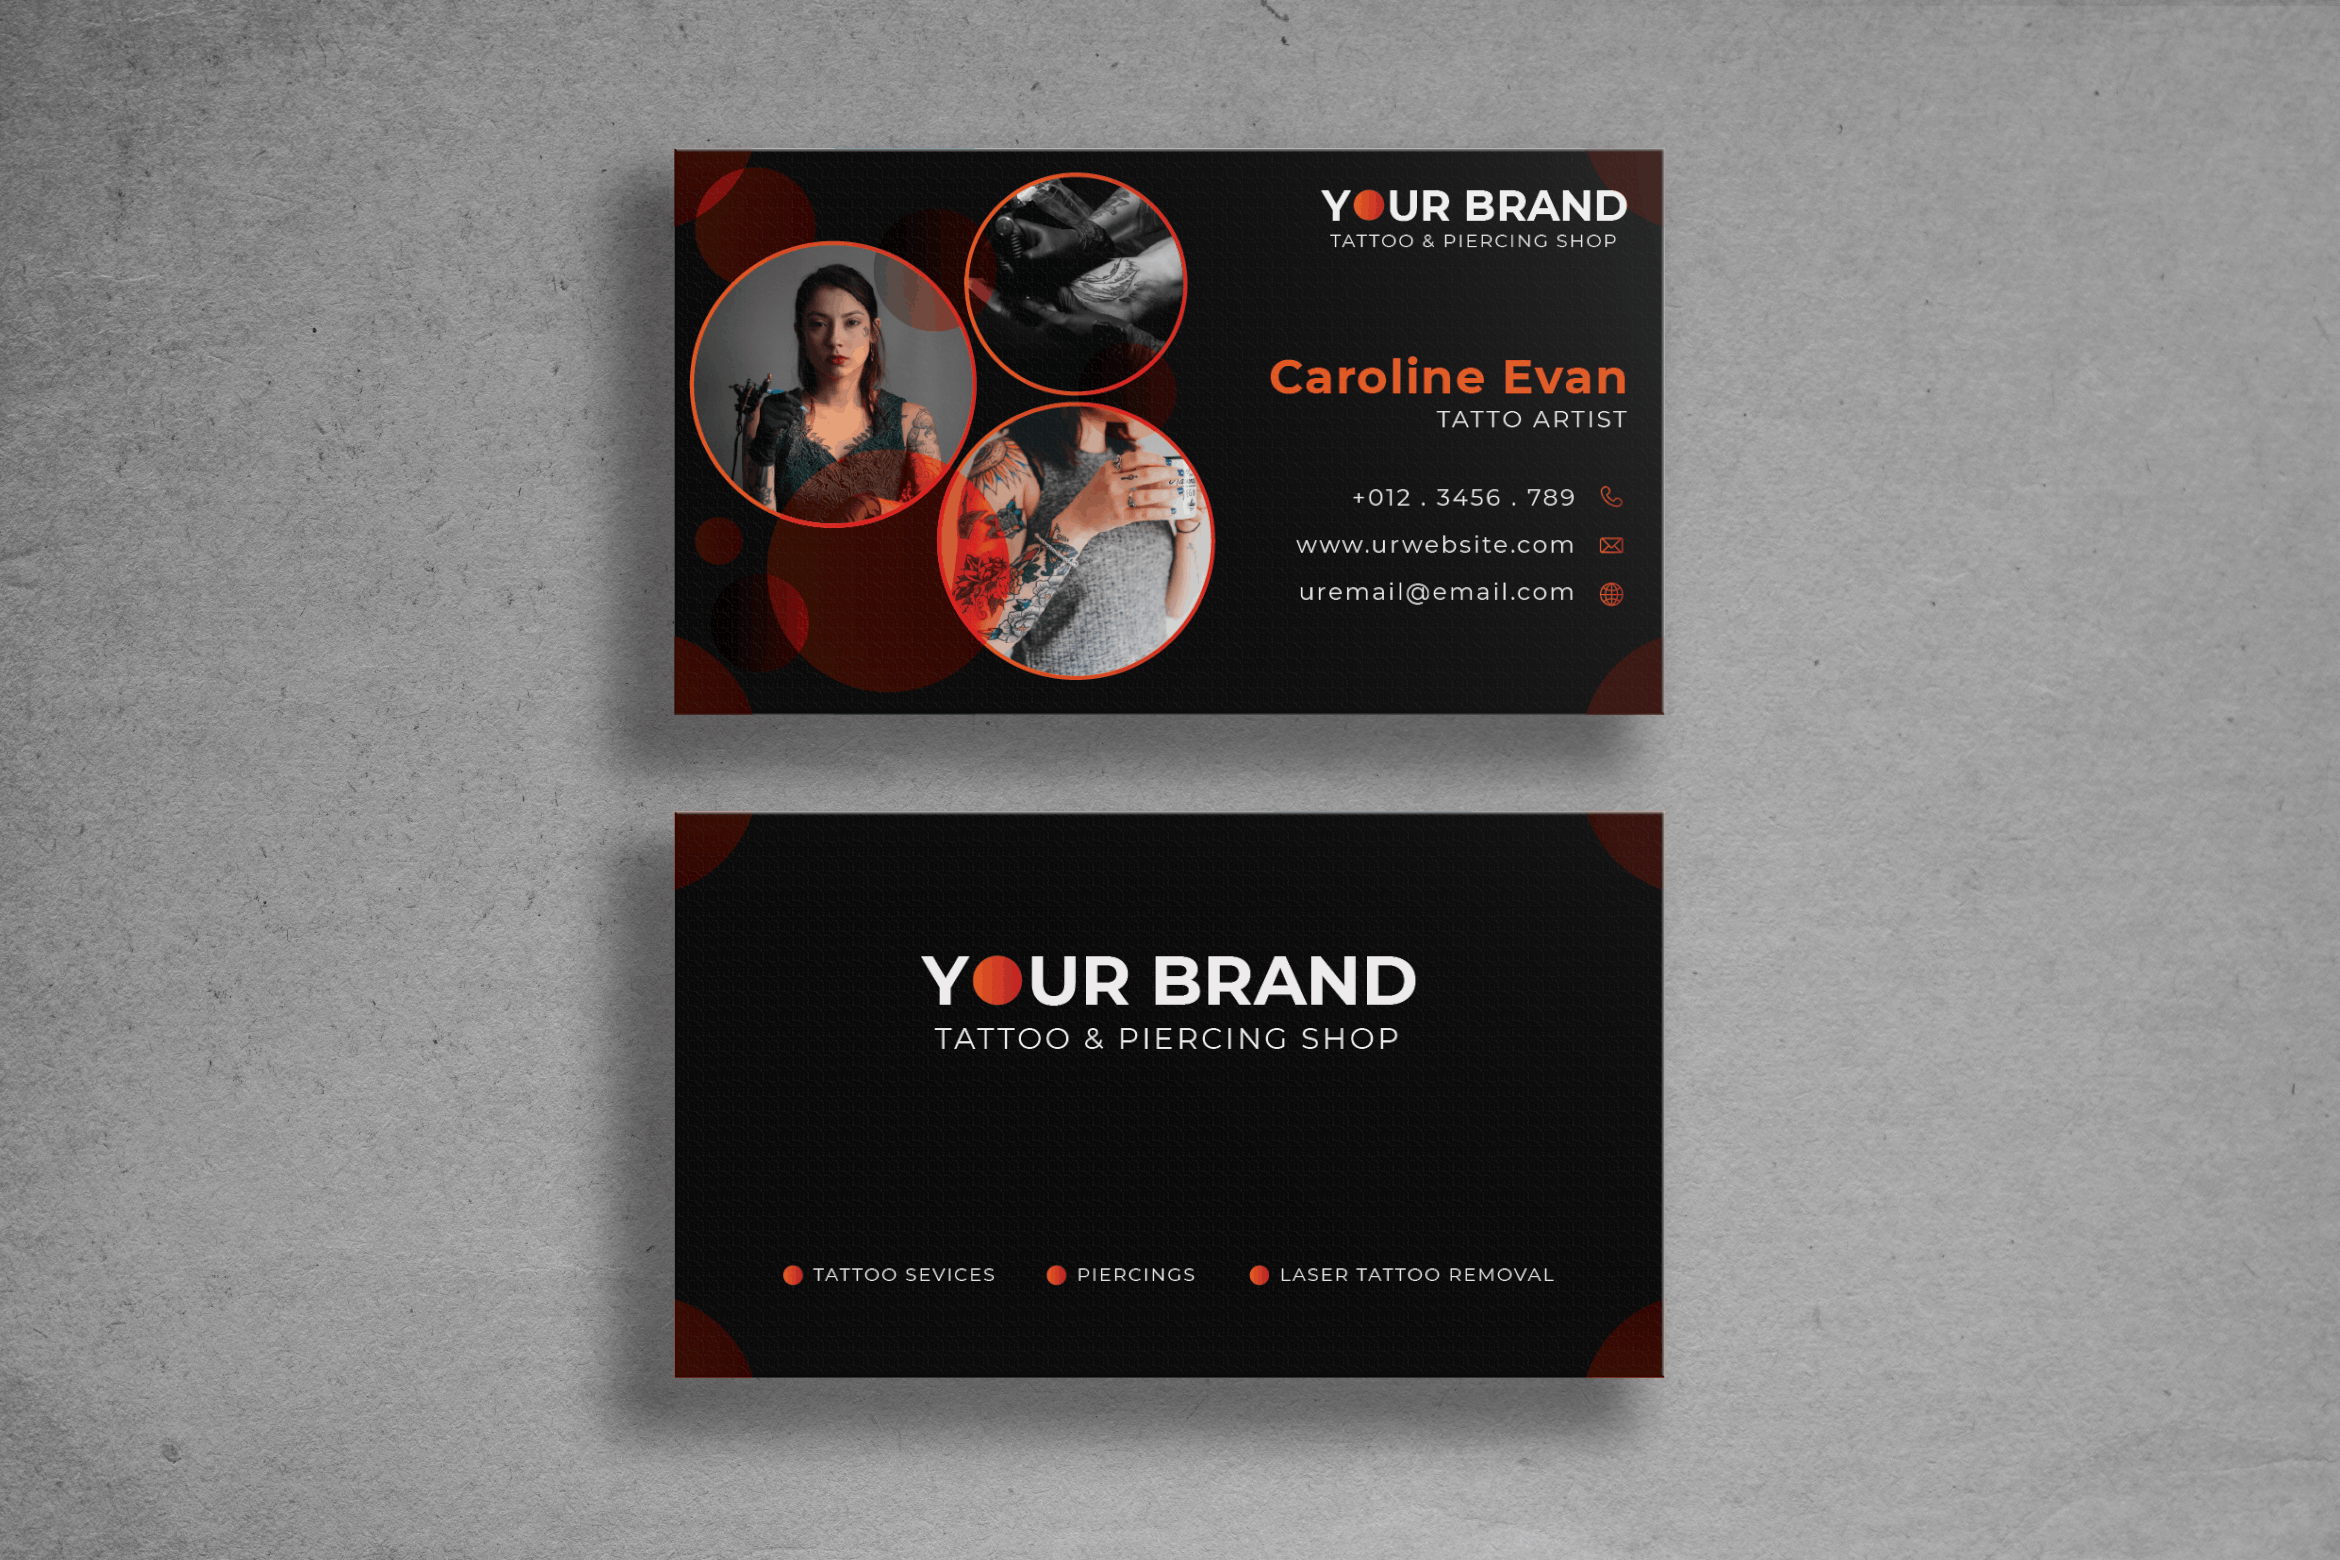 Business Card - Tattoo Artist Brand